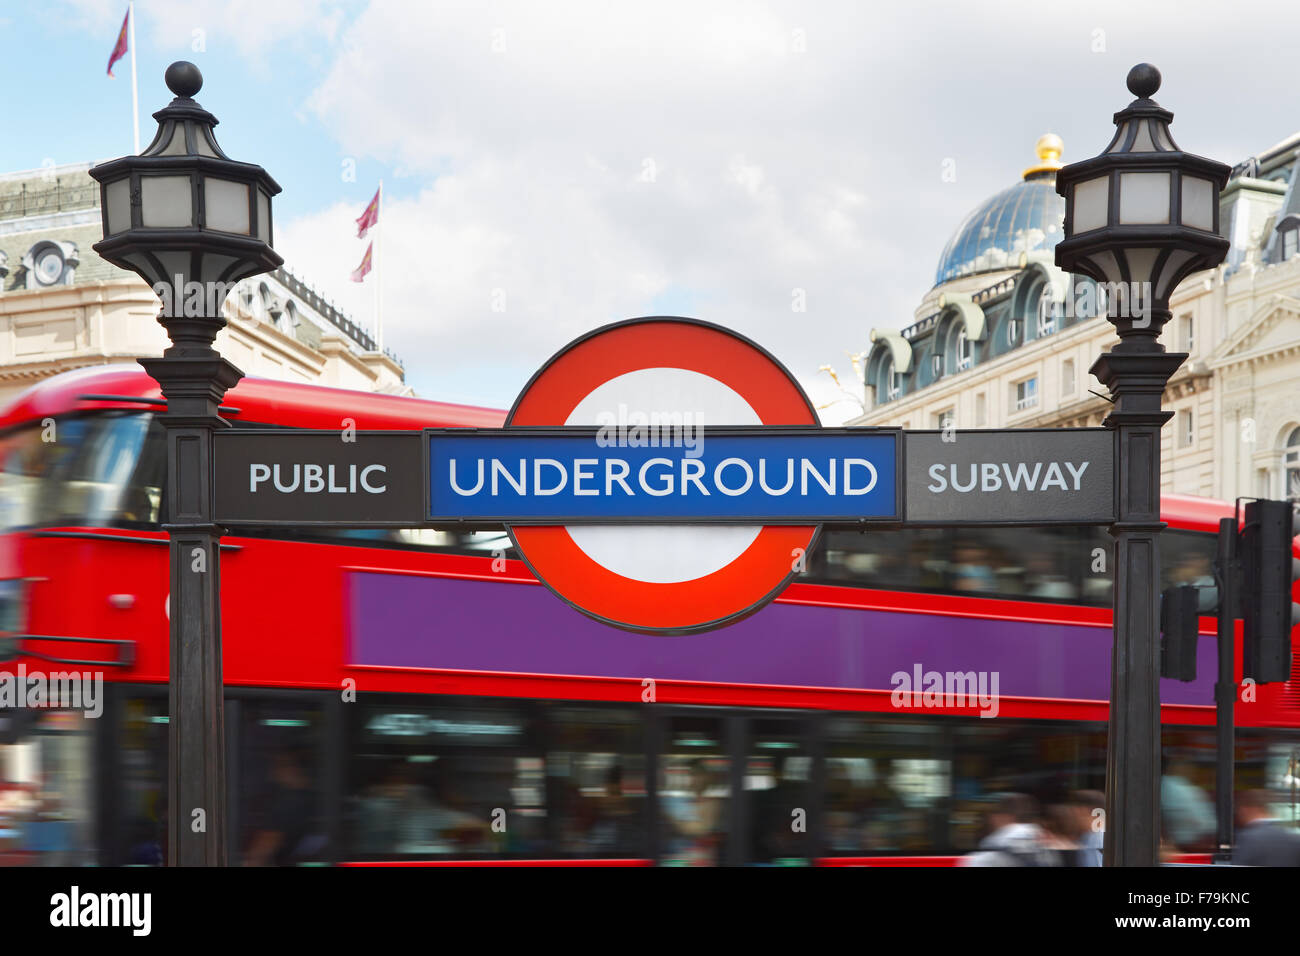 London underground sign with street lamps and red double decker bus background - Stock Image